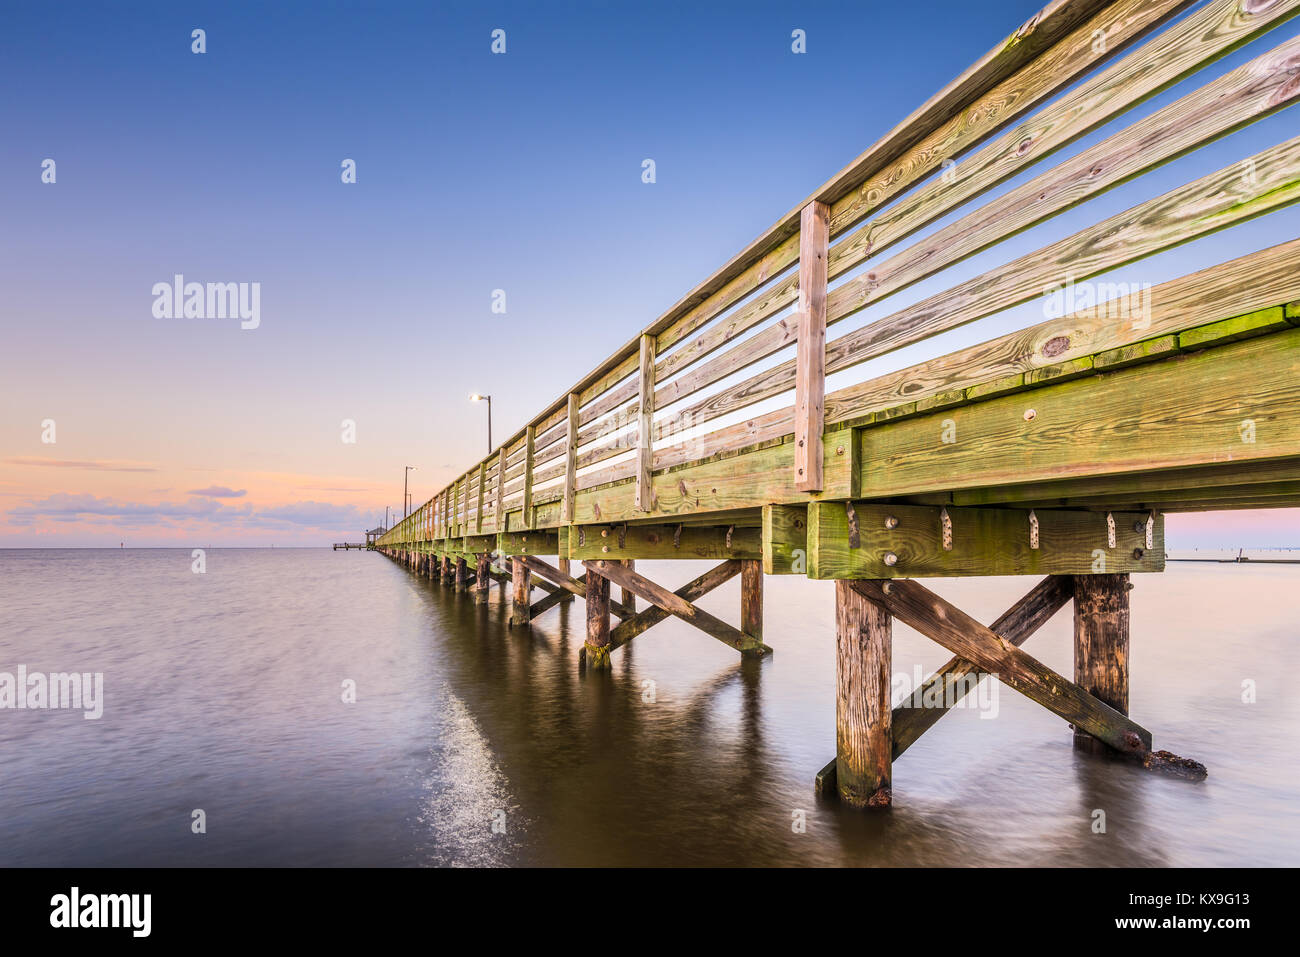 Biloxi Mississippi At Lighthouse Pier Stock Photo Alamy